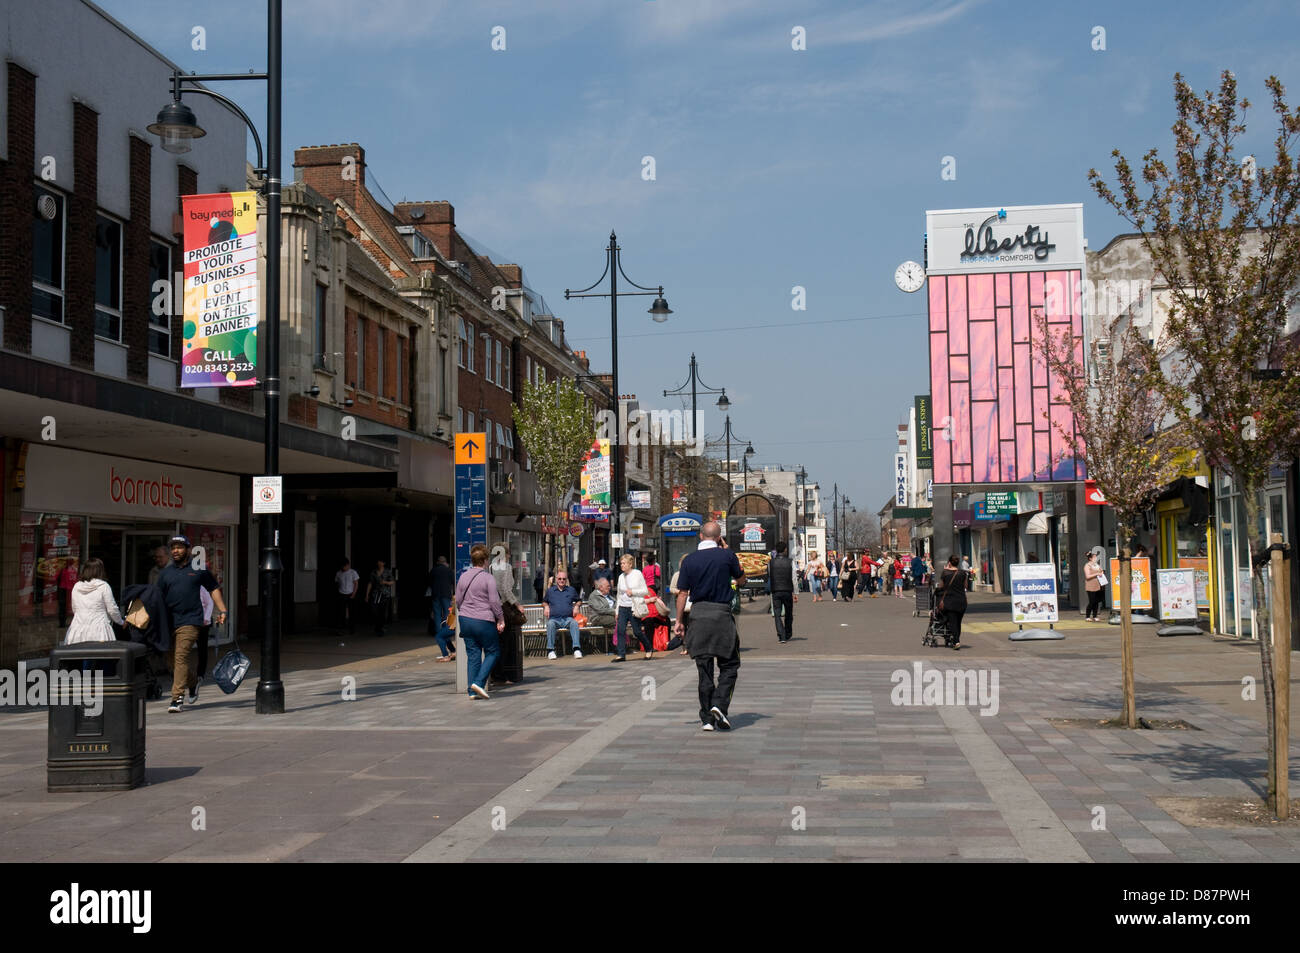 South Street, Romford connects the shopping centre center with the railway station - Stock Image